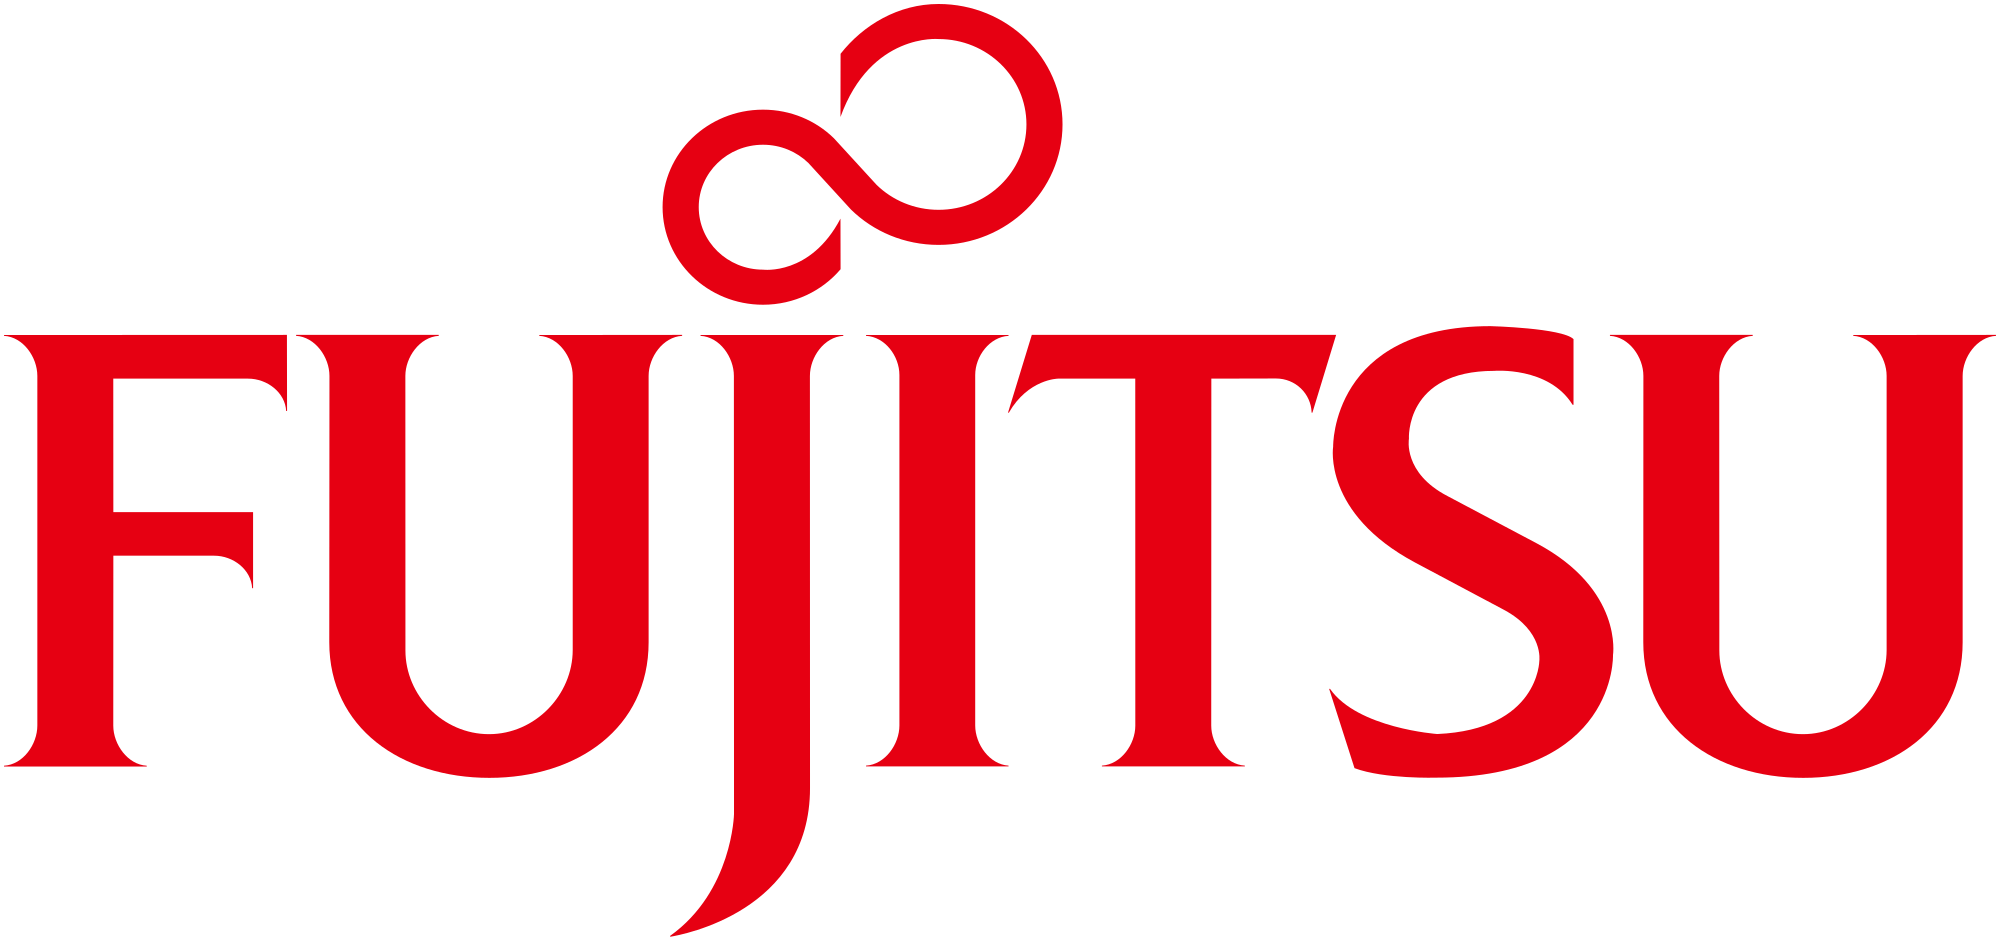 Board Technology partner: Fujitsu - XBRL processing capabilities